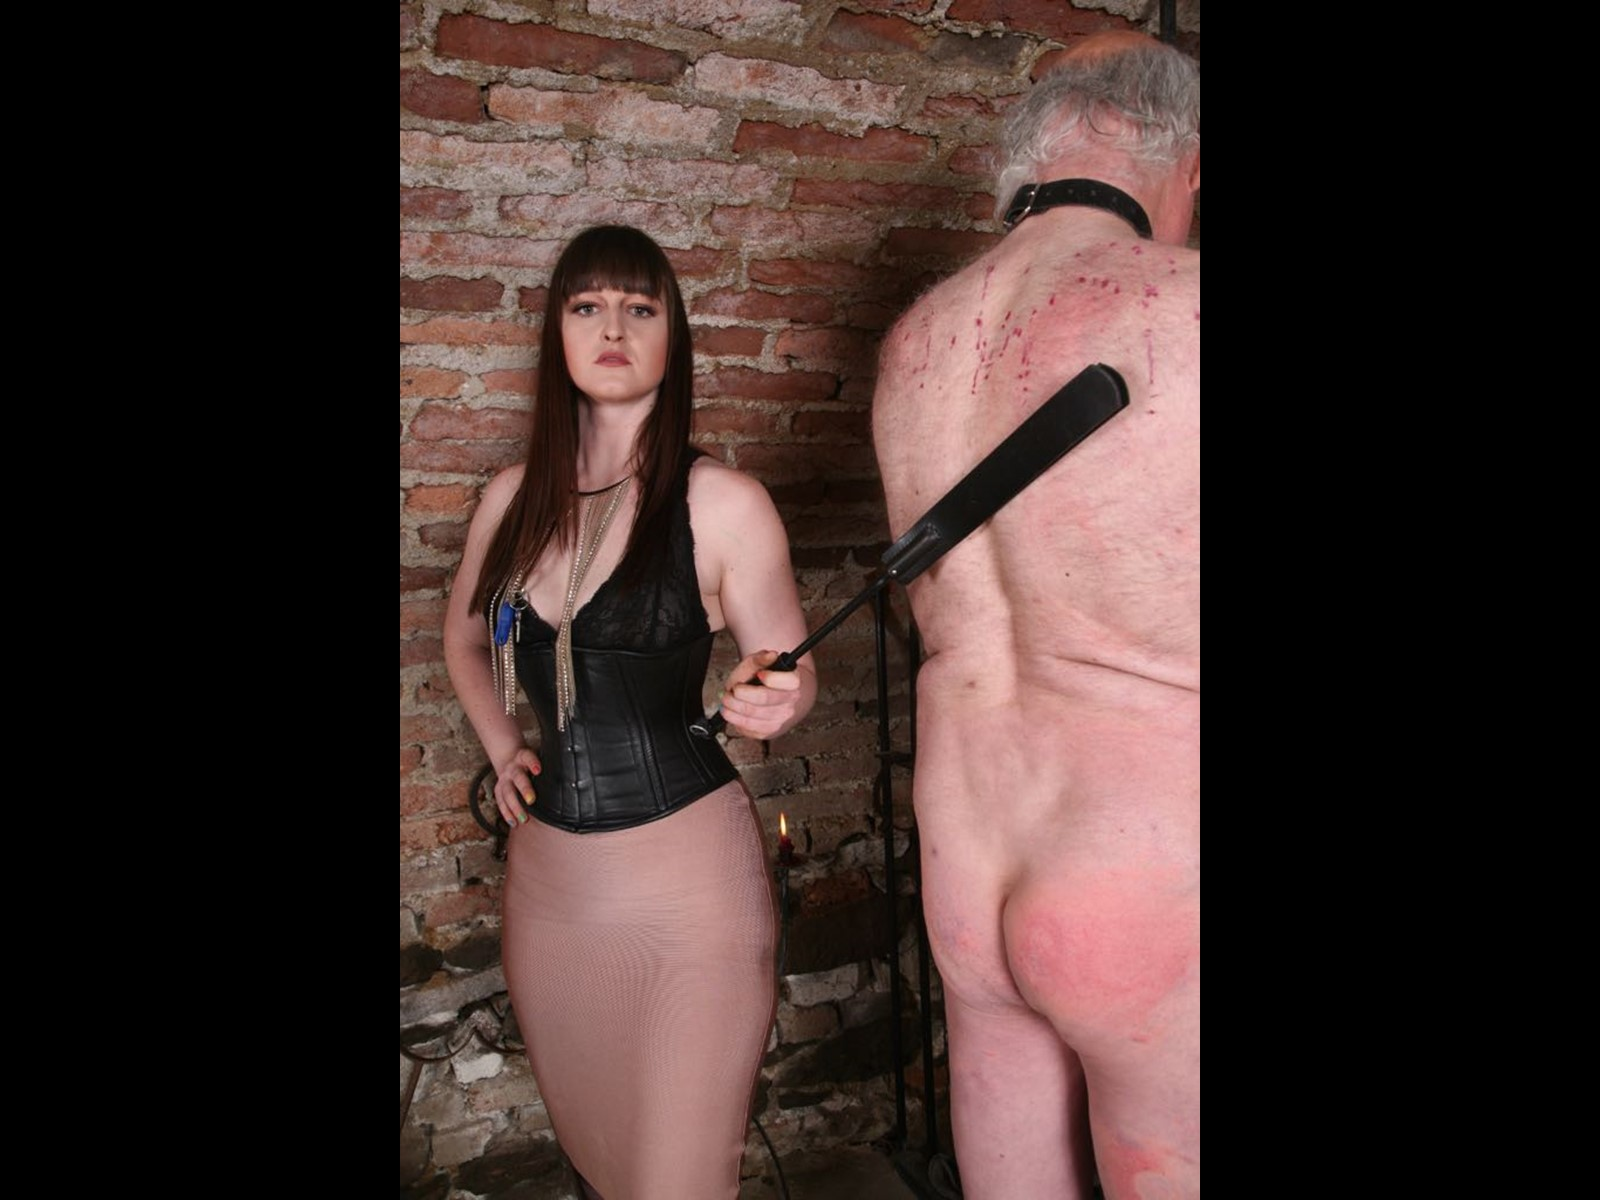 Candle Wax Leather Corset Interrogation OWK Other World Kingdom